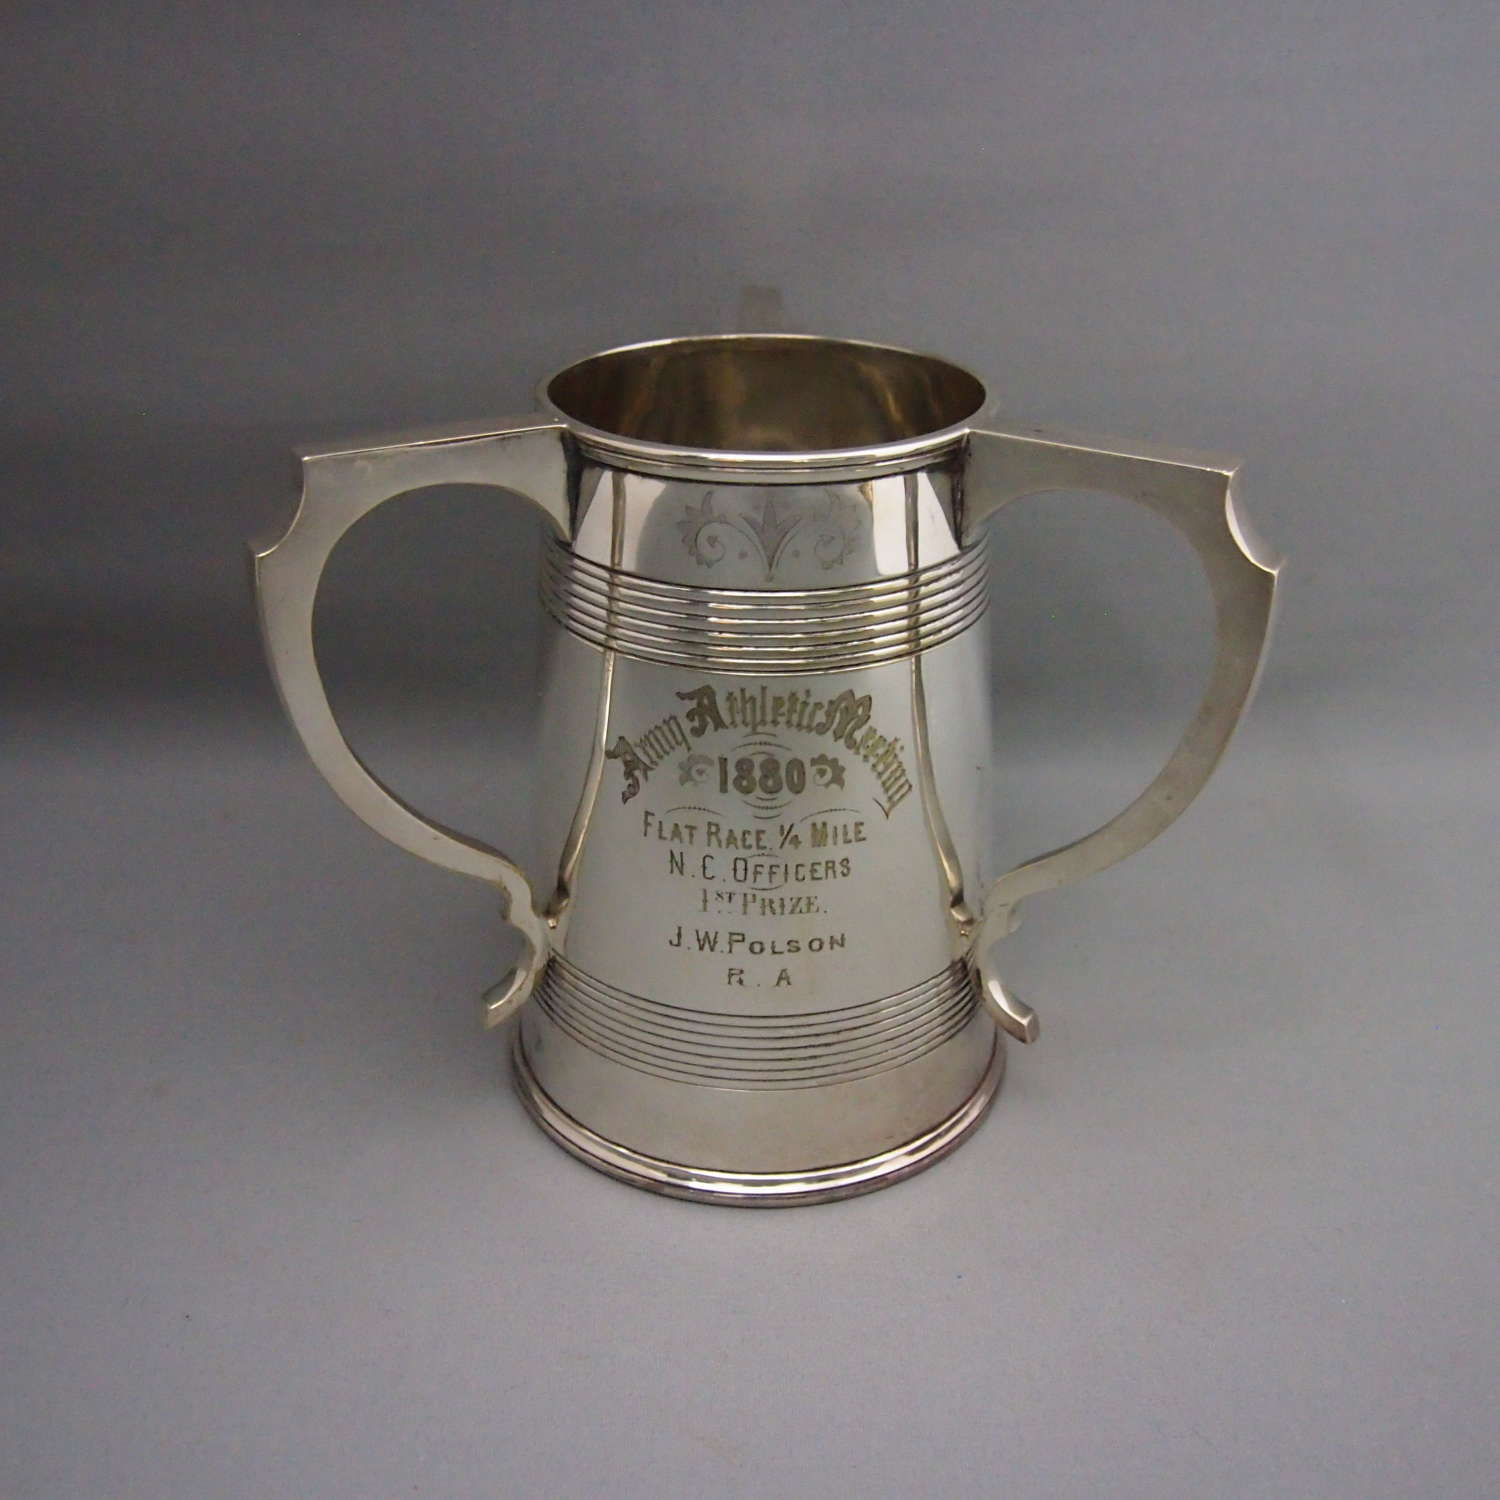 Antique Silver Plated Tyg Three Handled Cup, W8665